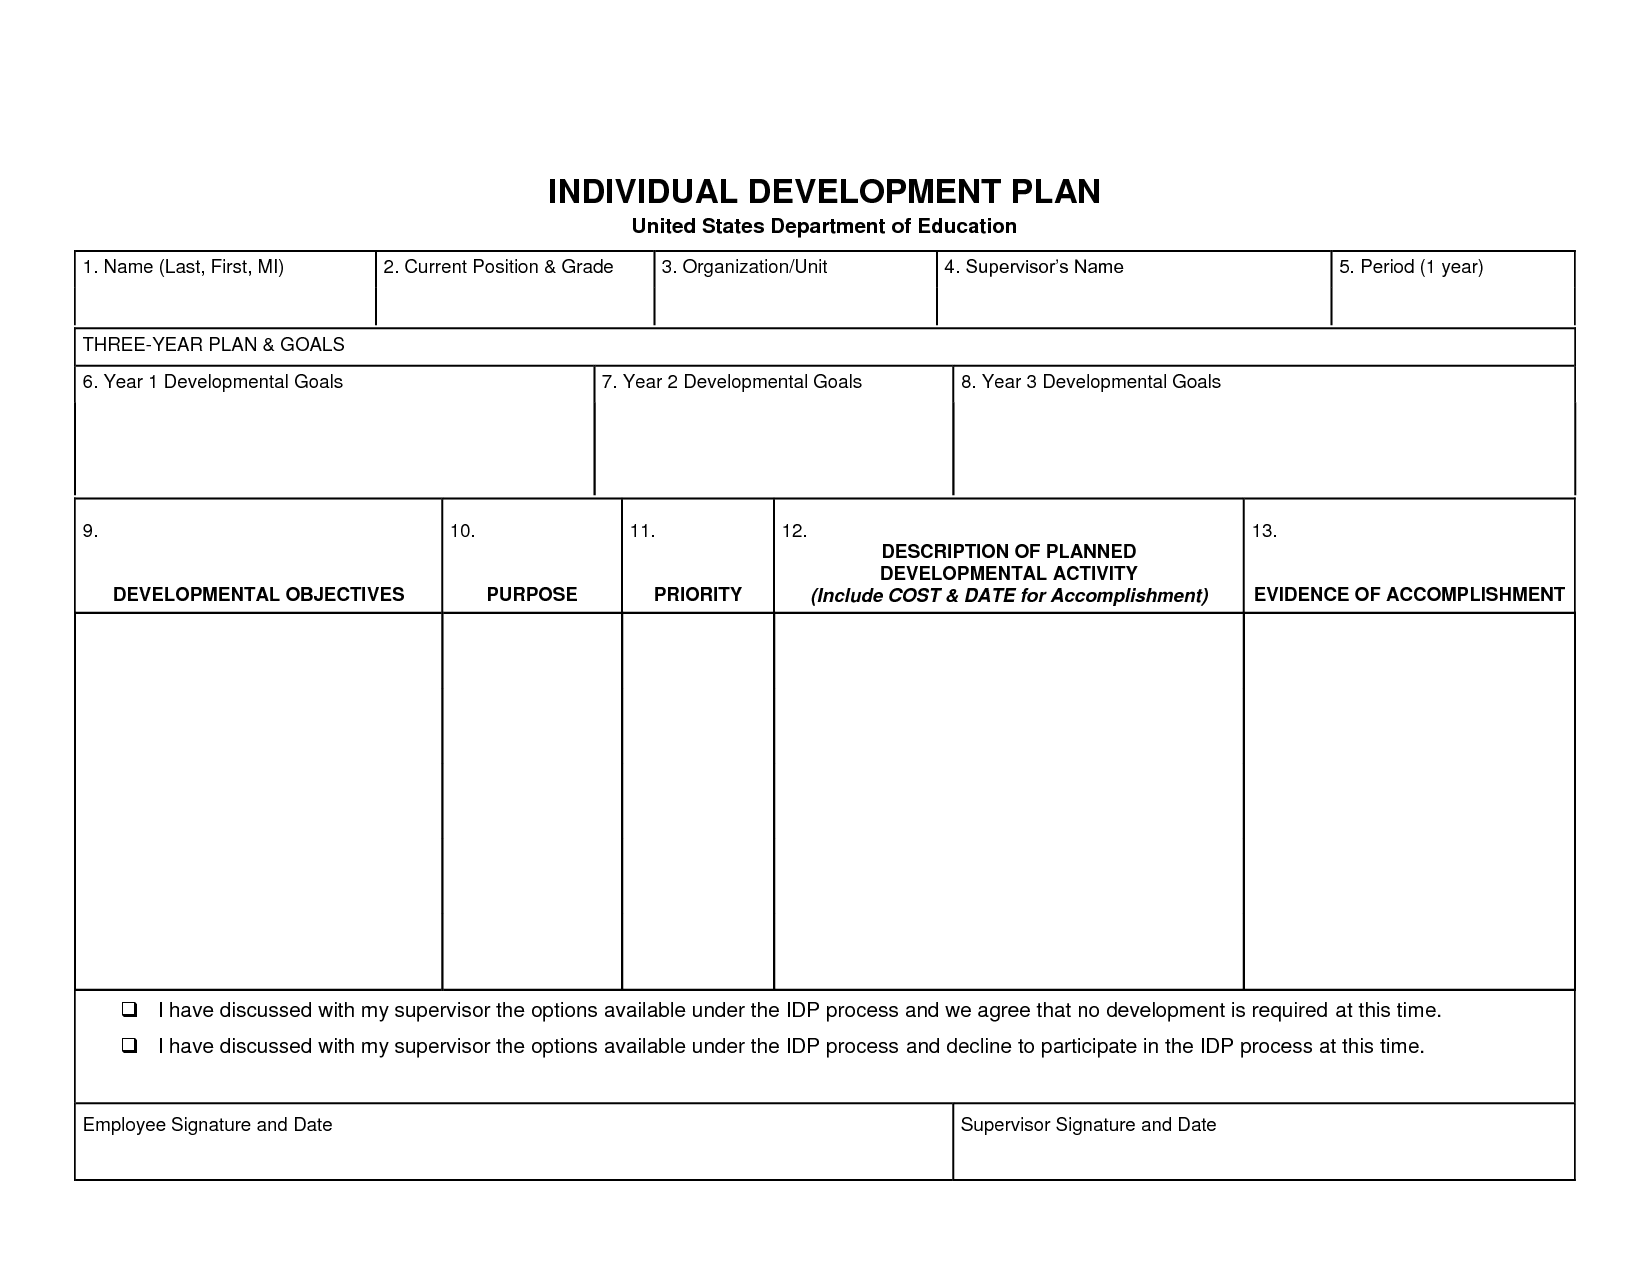 Individual Development Plan Template Word   Google Search  Employee Development Plan Template